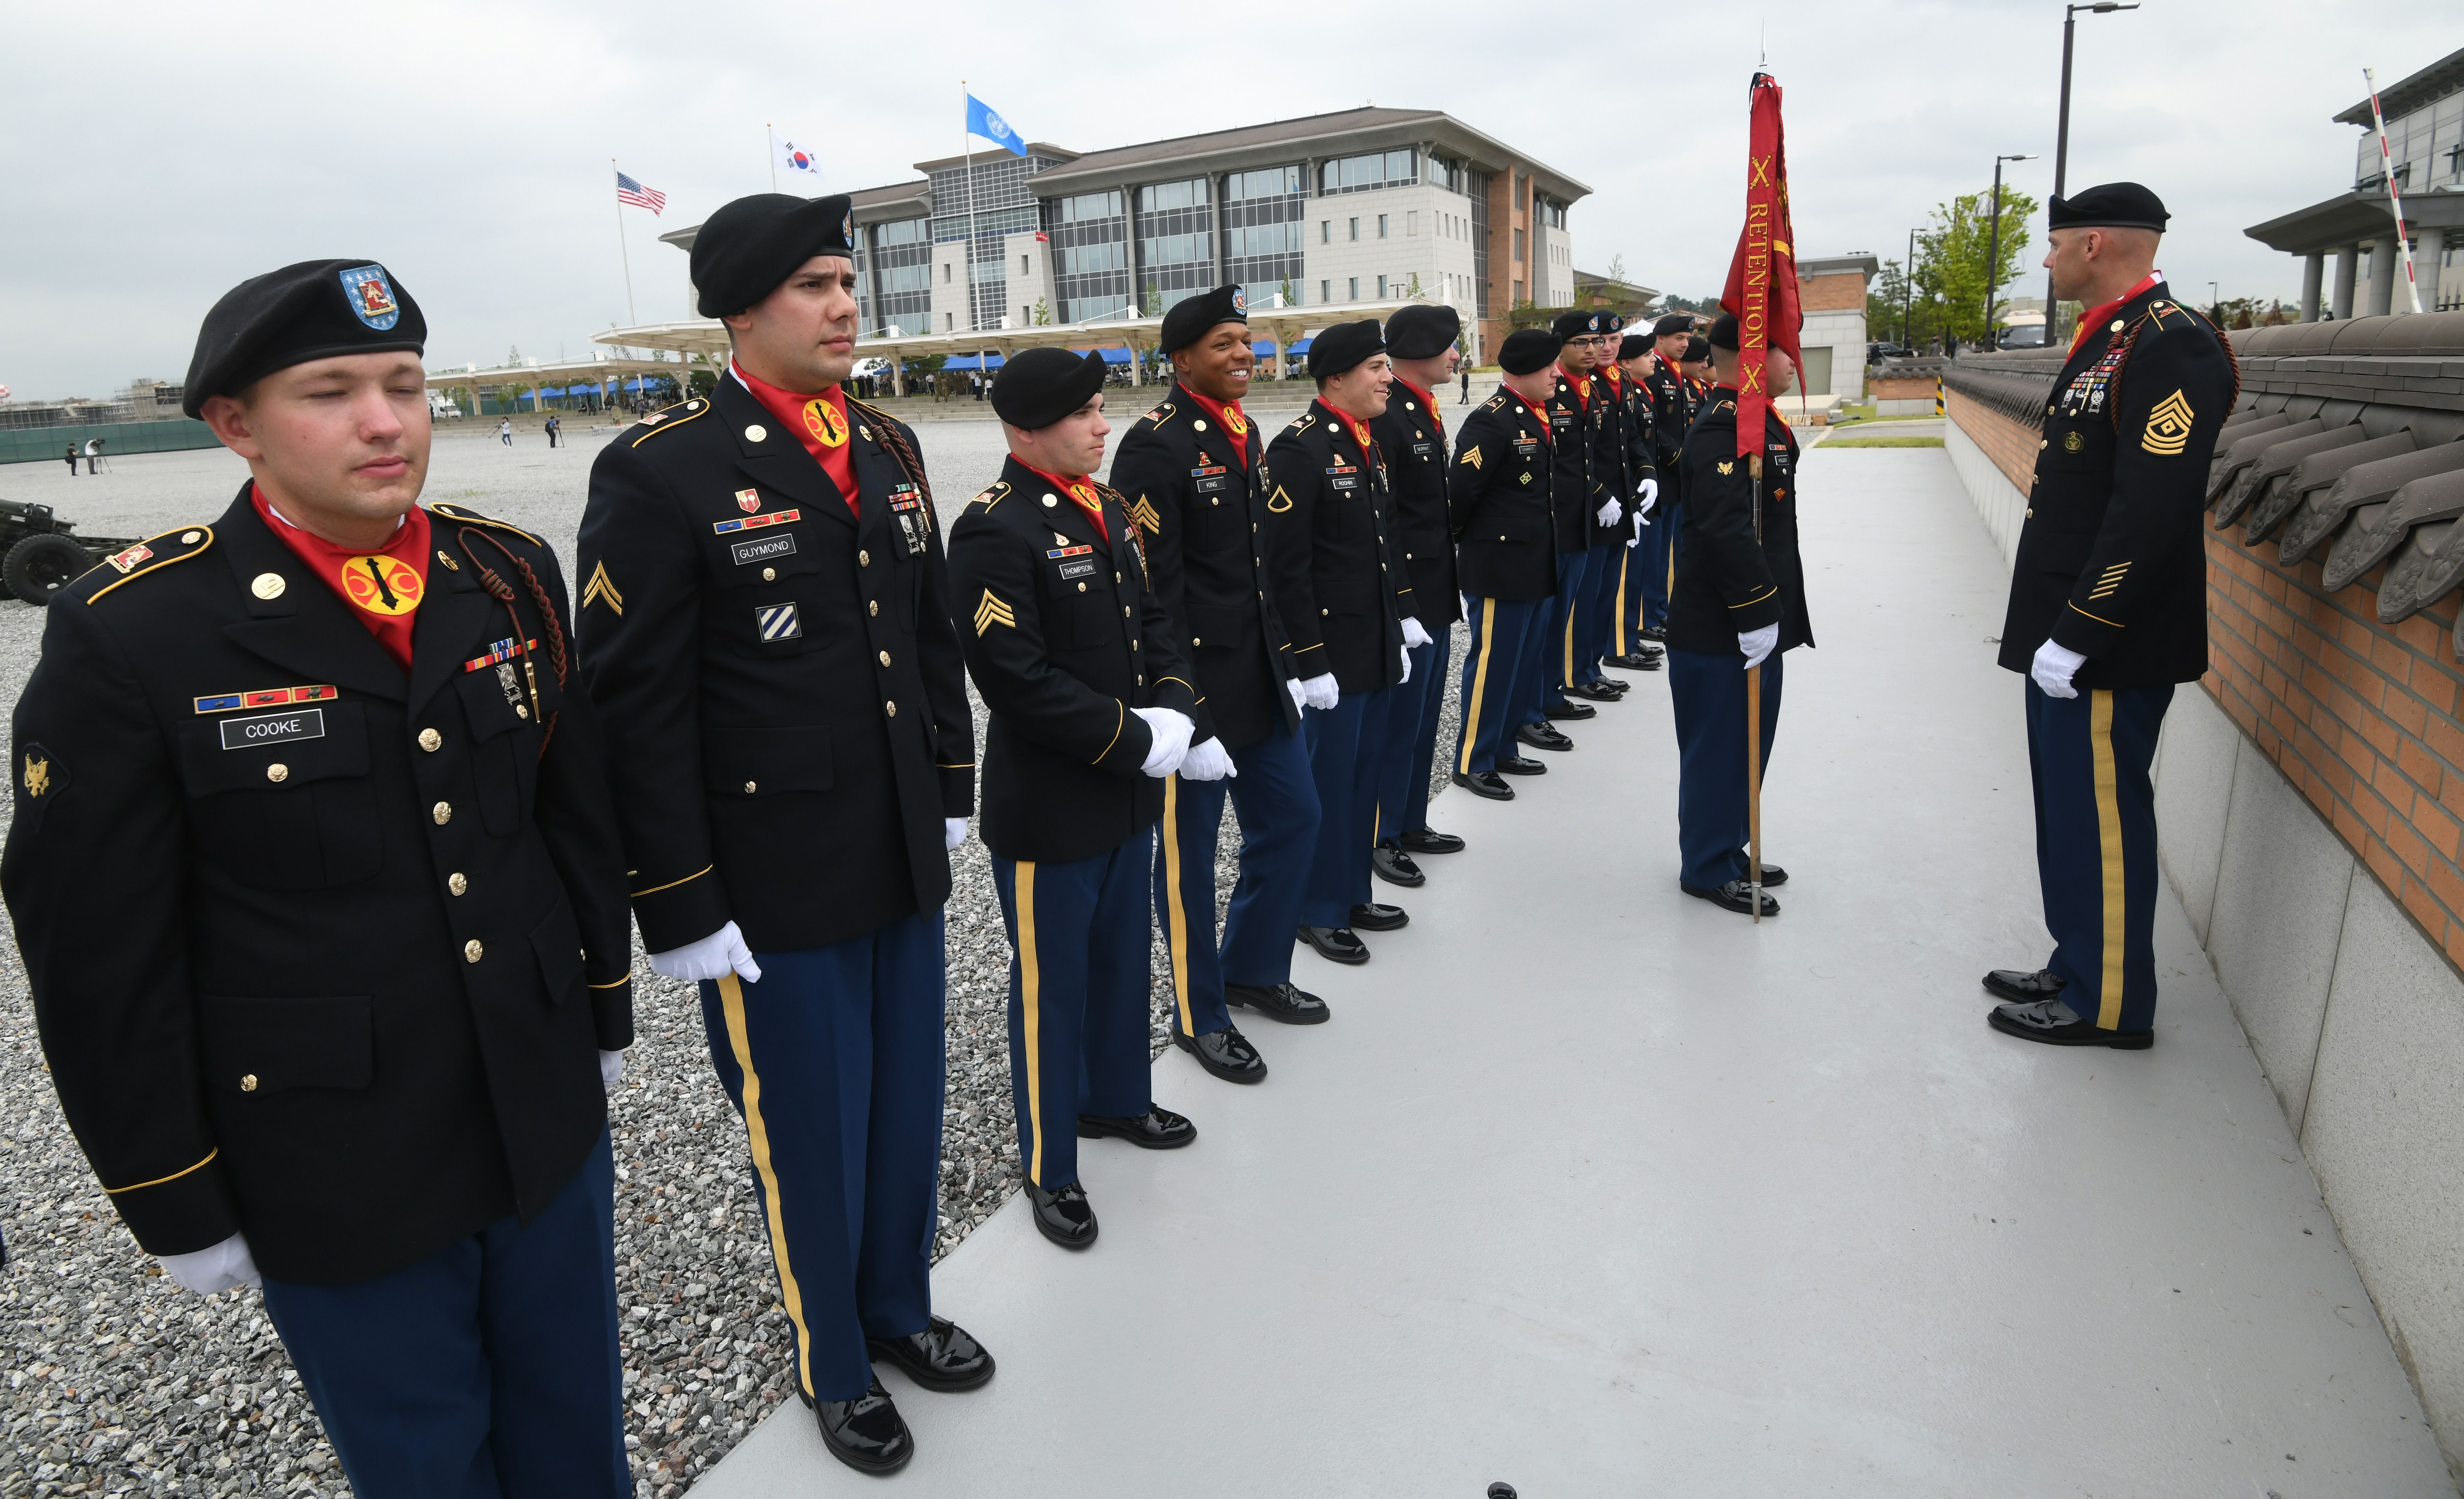 US soldiers stand ahead of a grand opening ceremony of the new headquarters building for the United Nations Command and US Forces Korea at Camp Humphreys in Pyeongtaek on June 29, 2018.